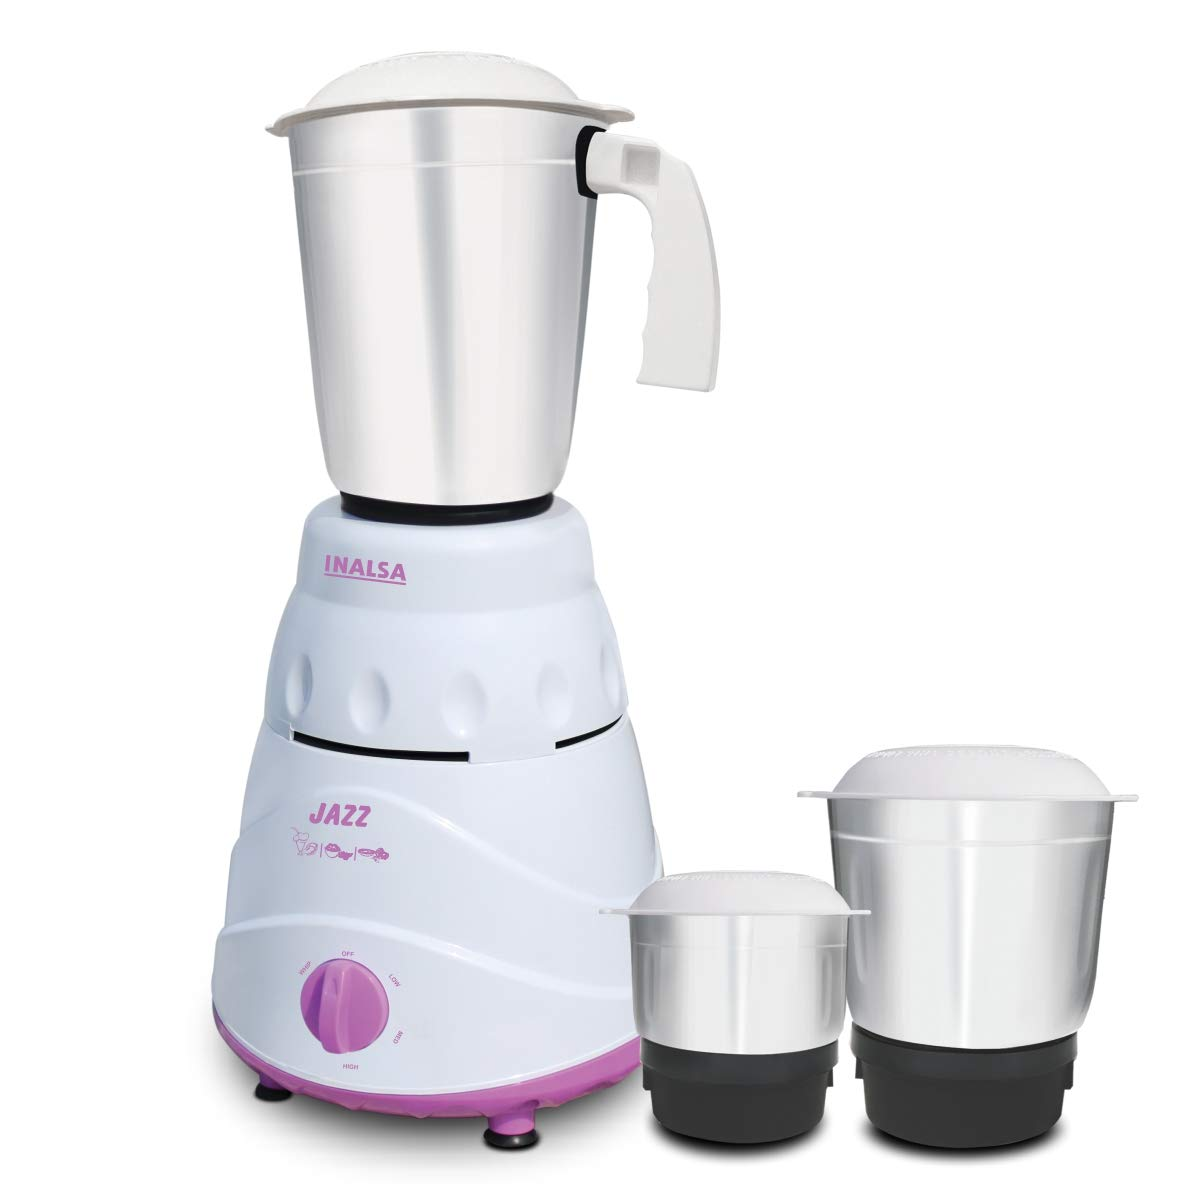 Best Mixer Grinder under 1000 Rs in India - Editor's Choice 2